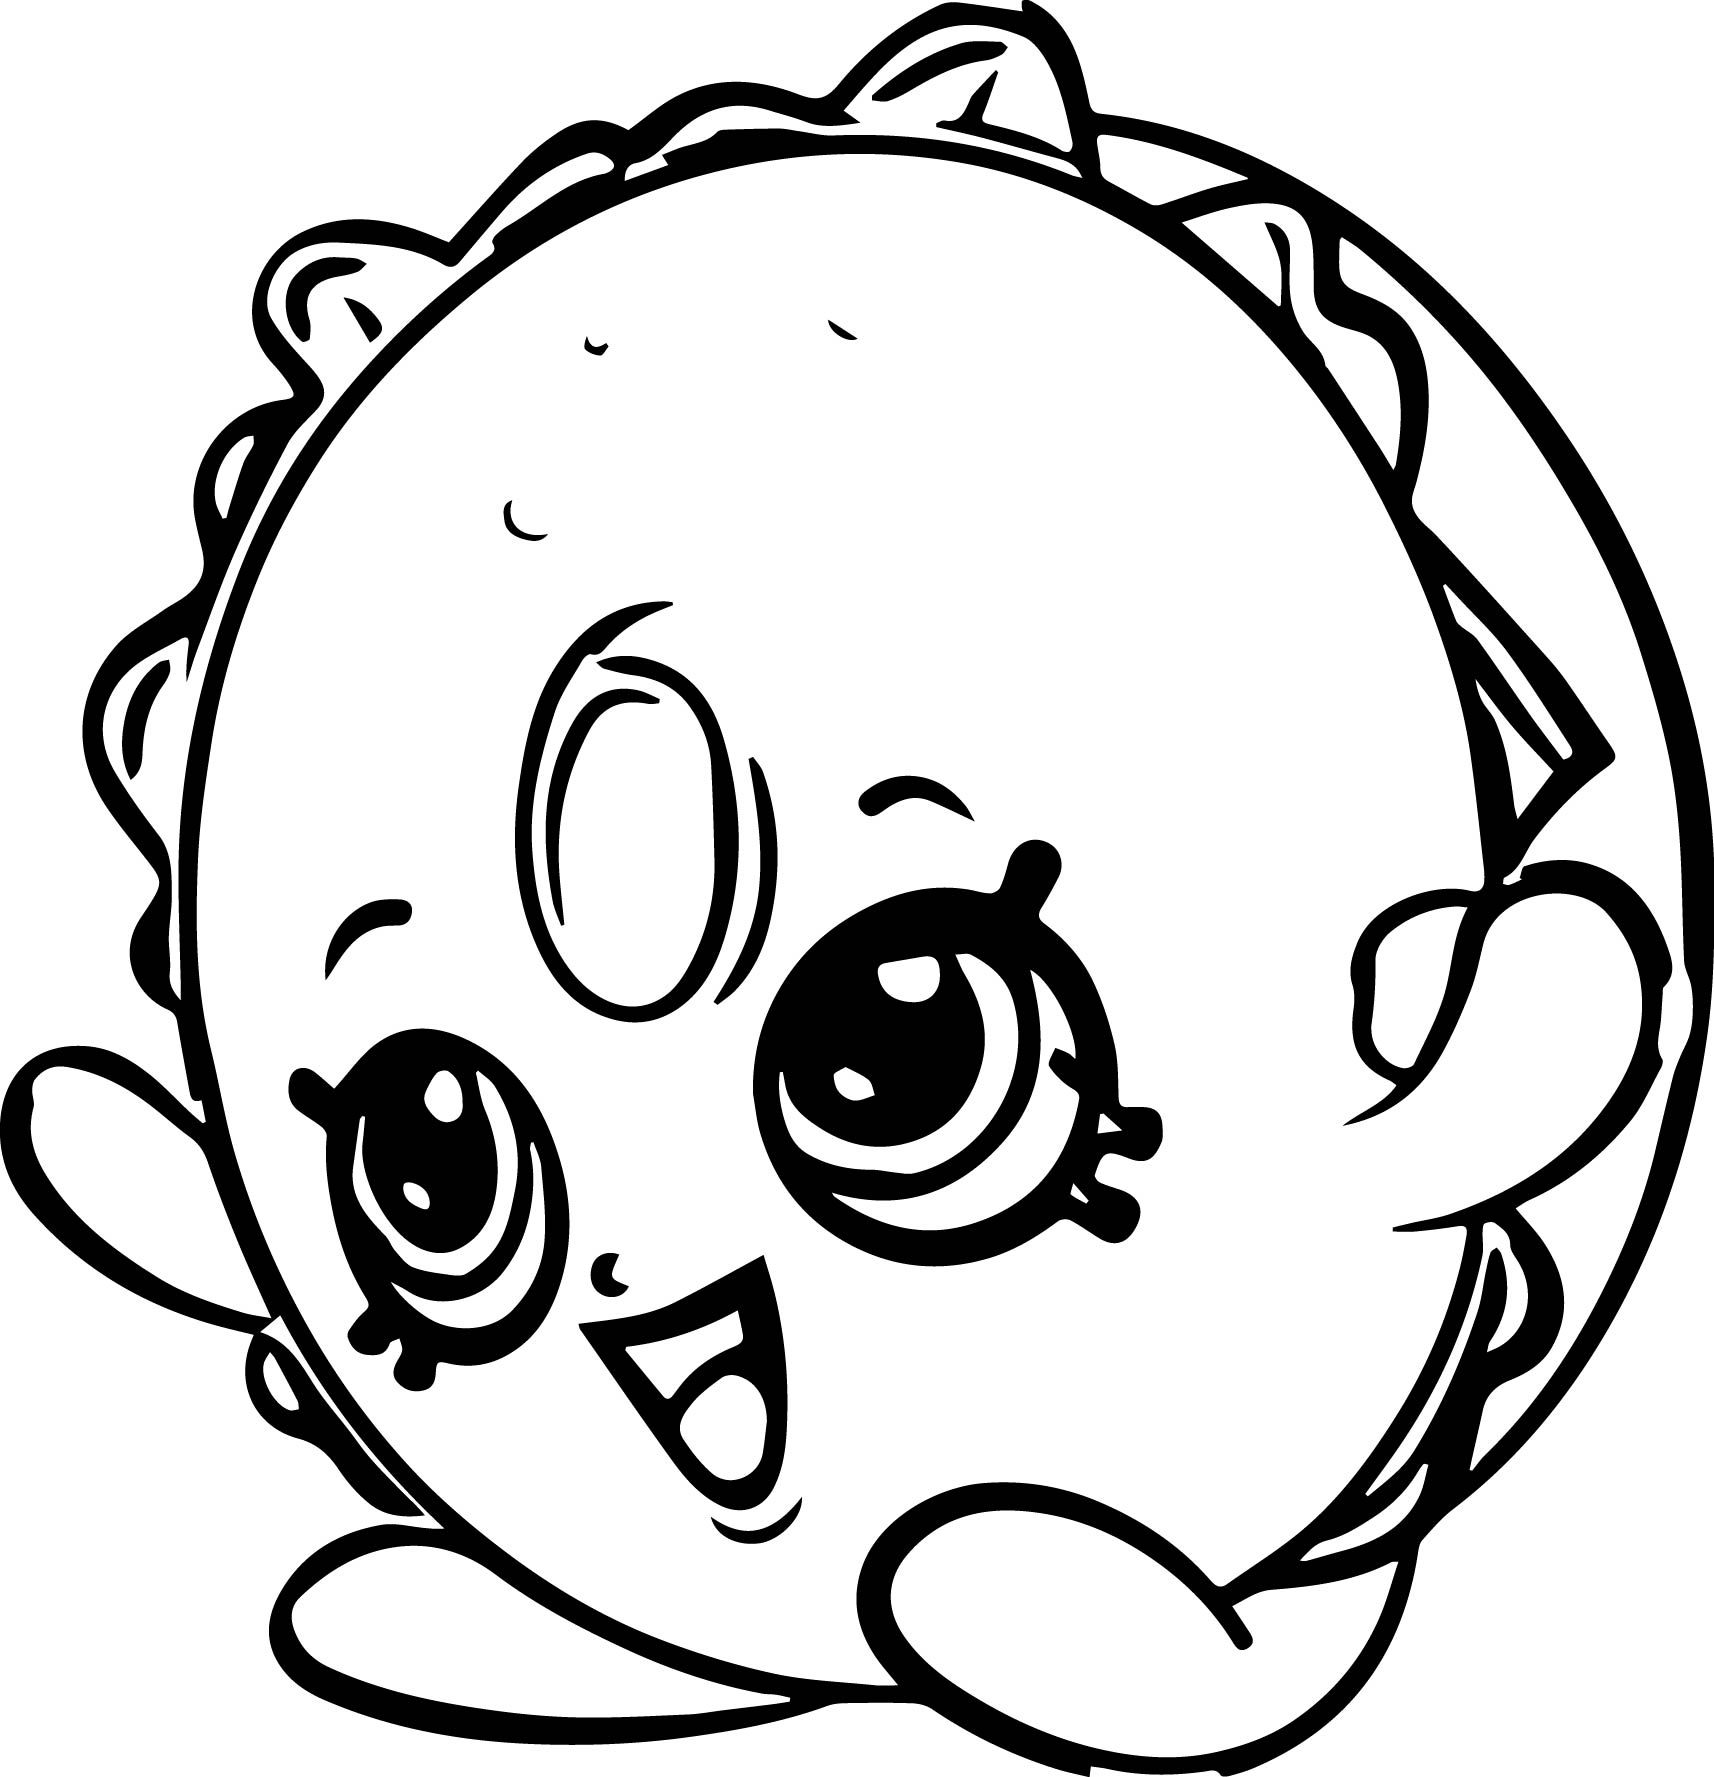 Bagel Billy Coloring Page